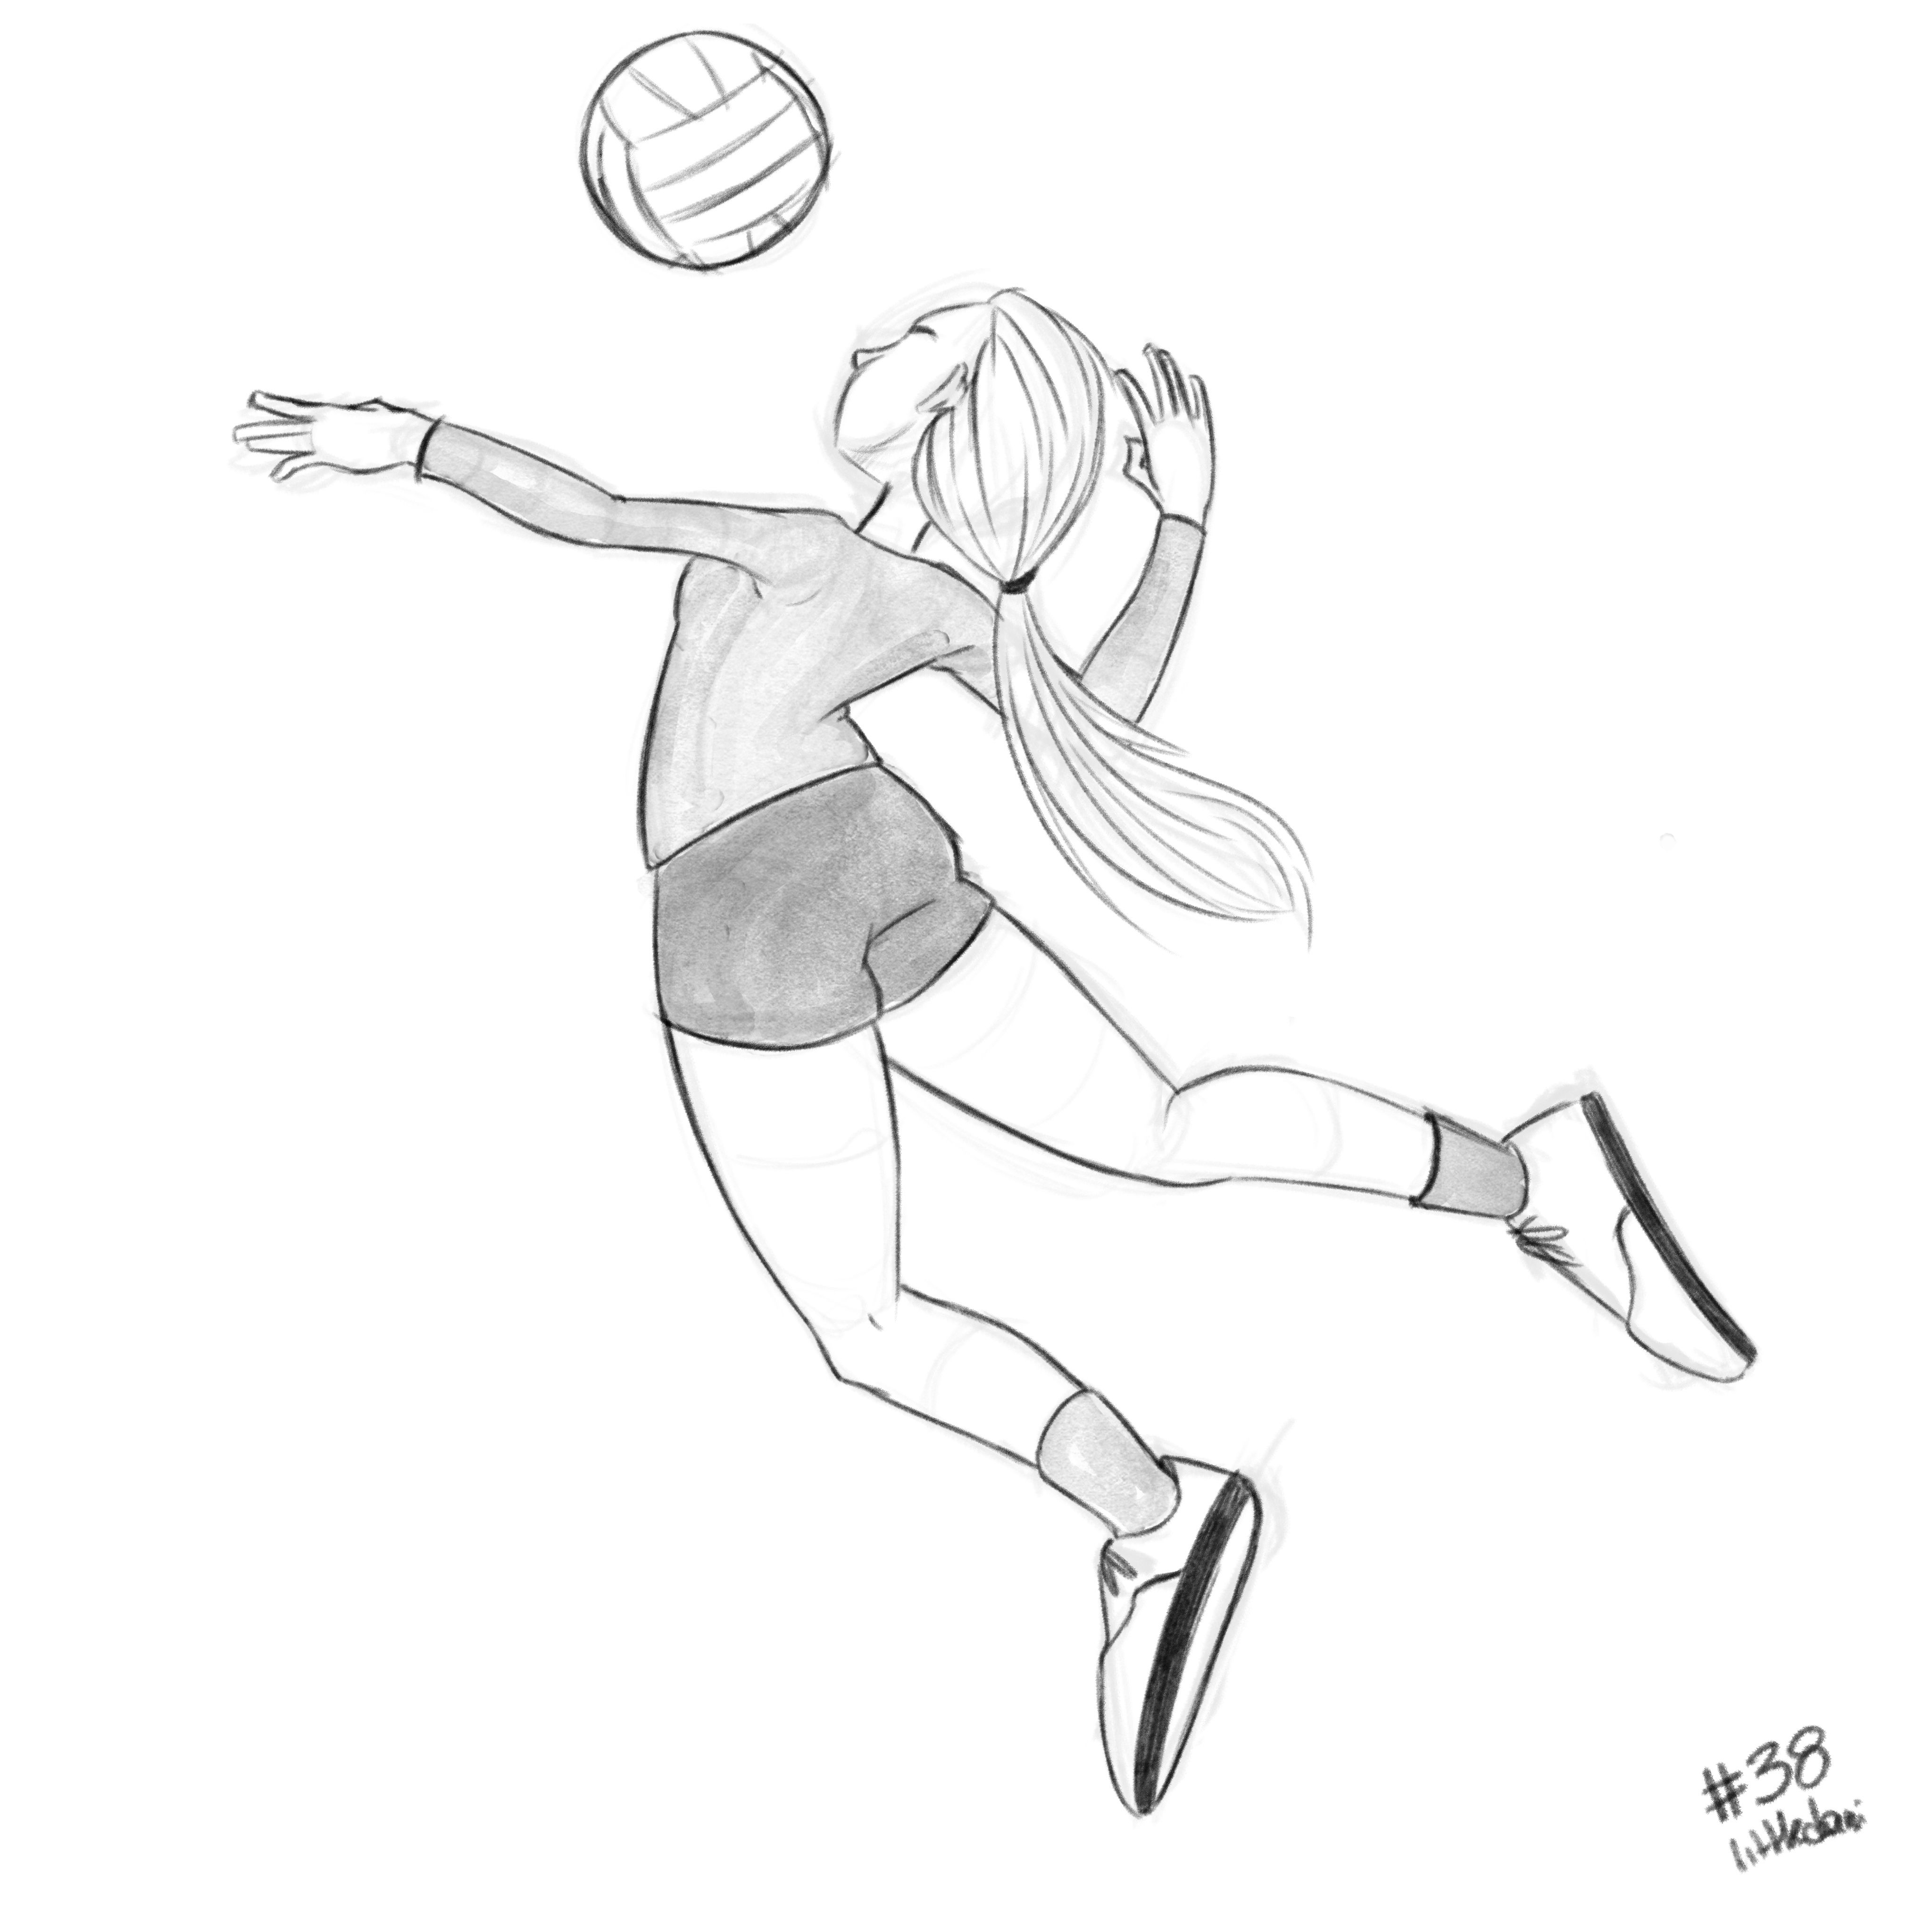 Volleyball 38 365 Day38 Volleyball 365daychallenge 365daysofart Sketch Drawing Illustration Sports Drawings Volleyball Drawing Drawings For Him